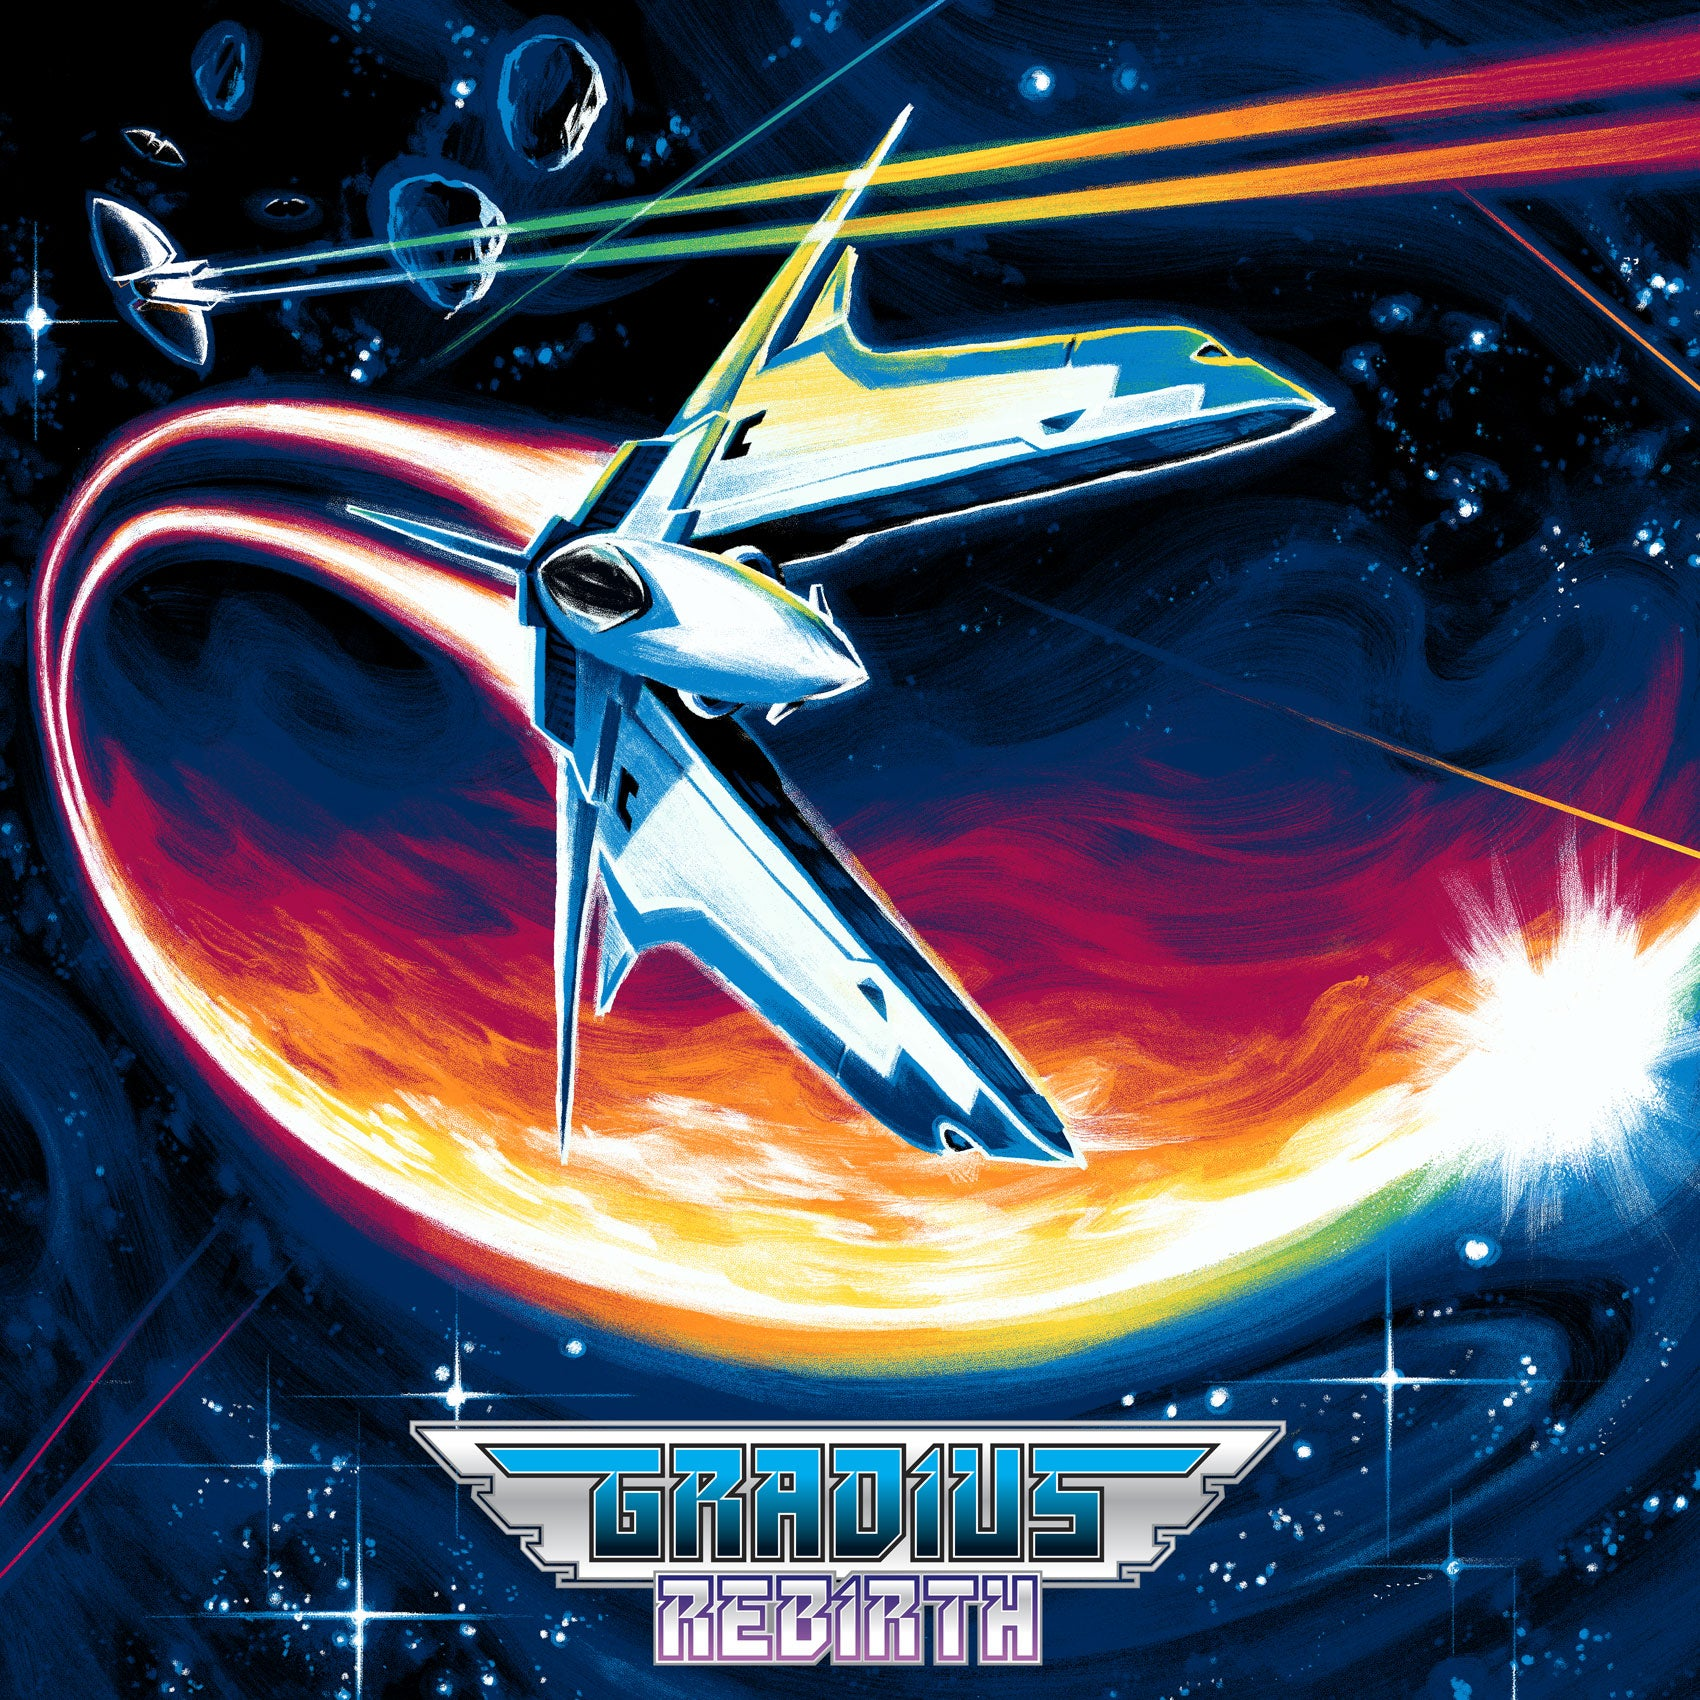 Gradius ReBirth - Original Video Game Soundtrack 2XLP